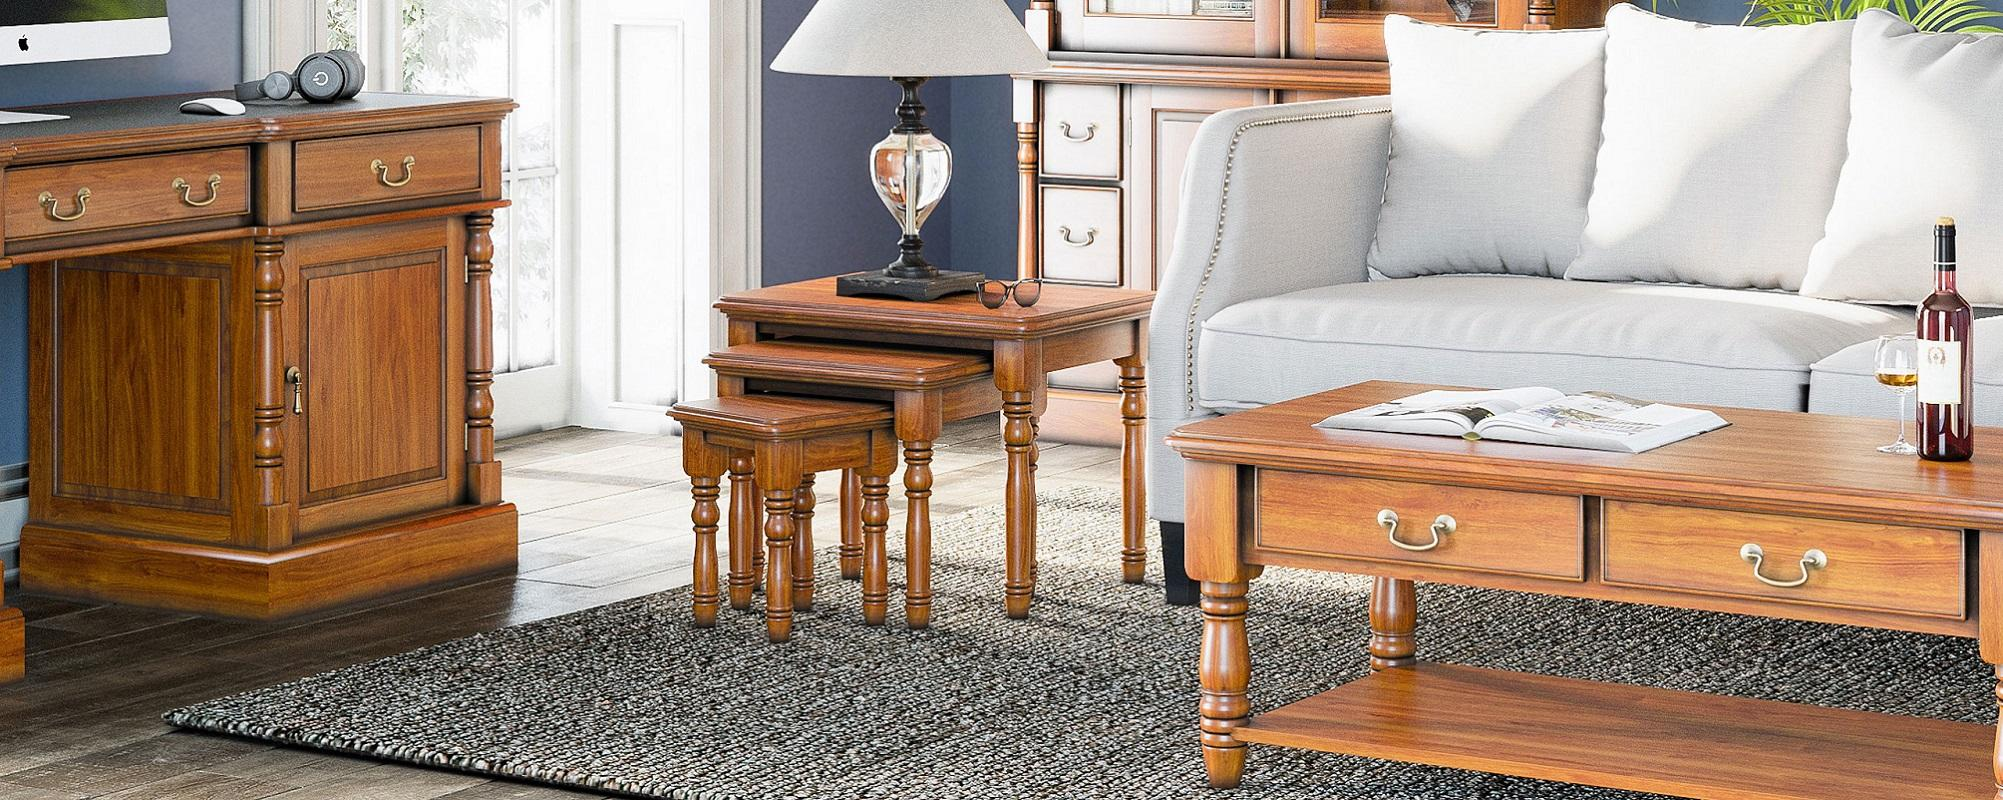 The New Sophisticated Mahogany Furniture Collection